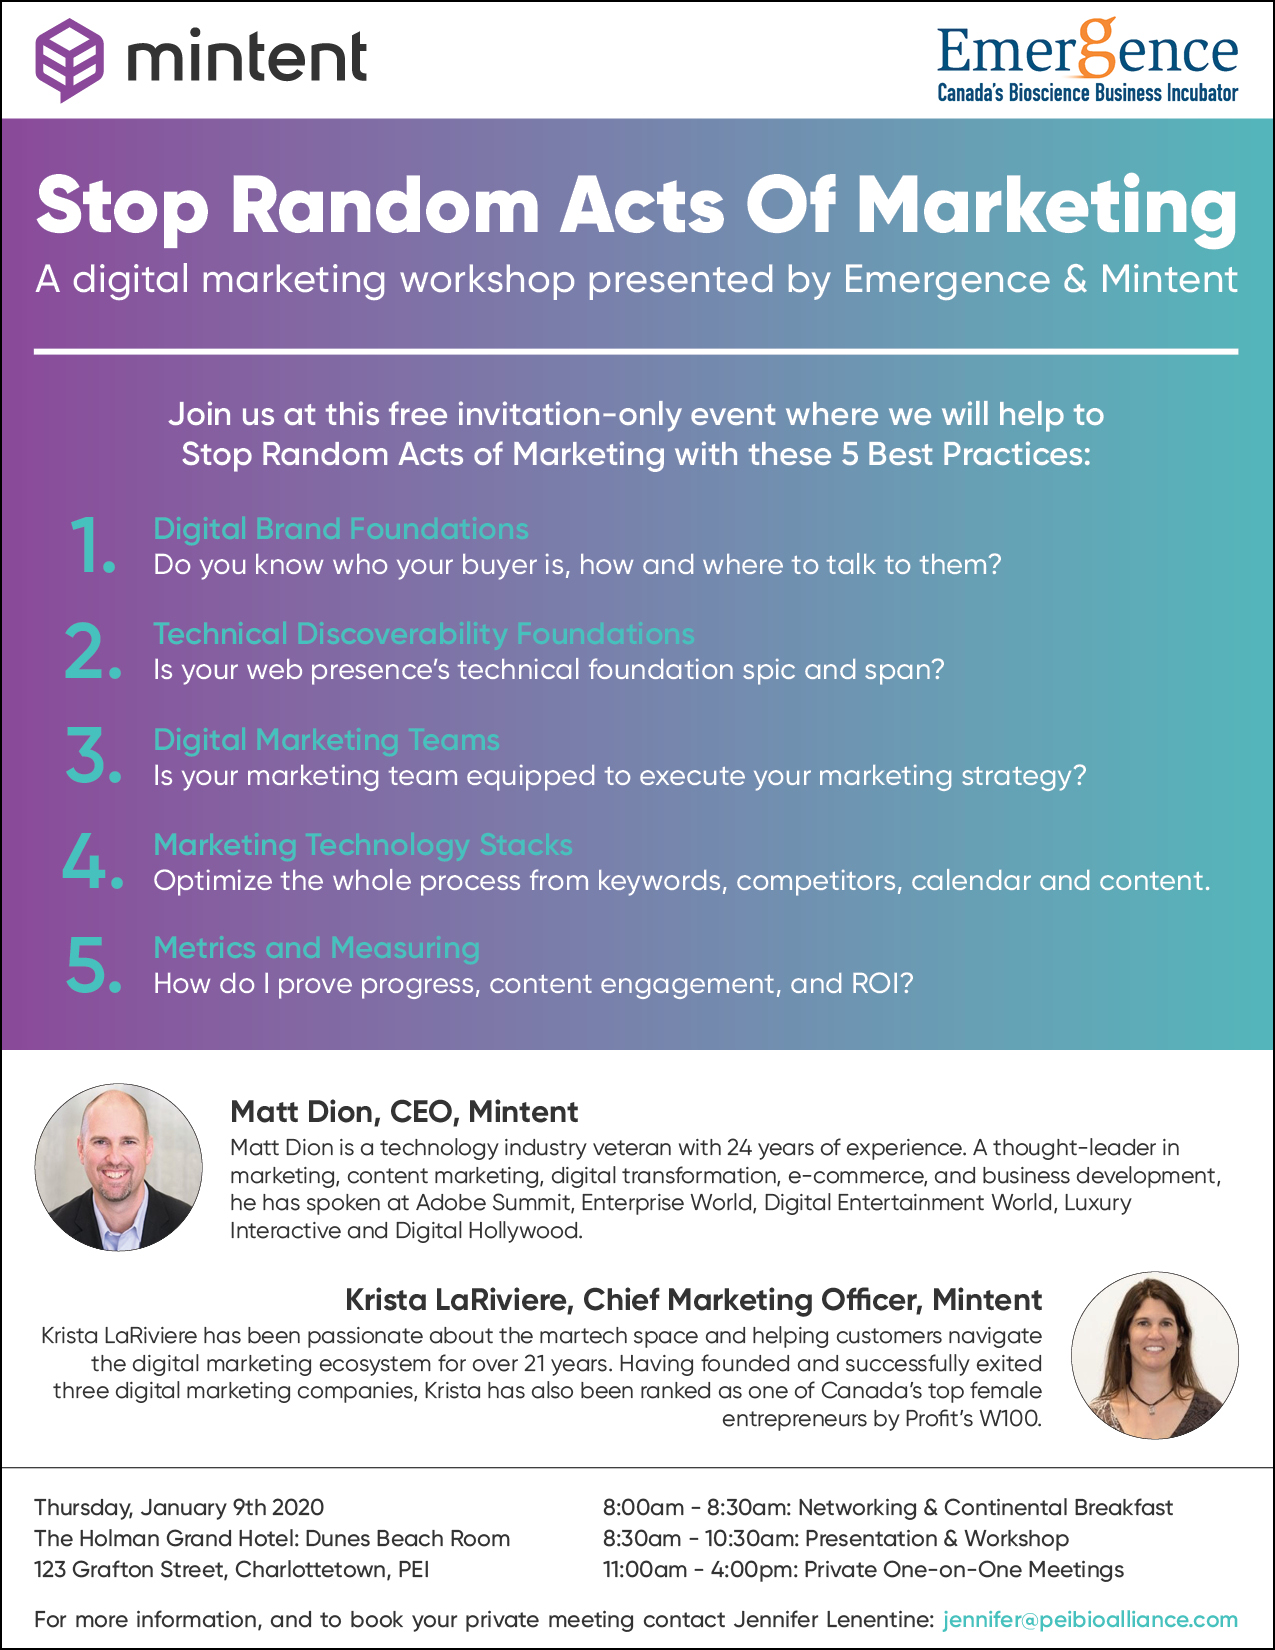 Stop Random Acts of Marketing Workshop @ Holman Grand Hotel, Dunes Room